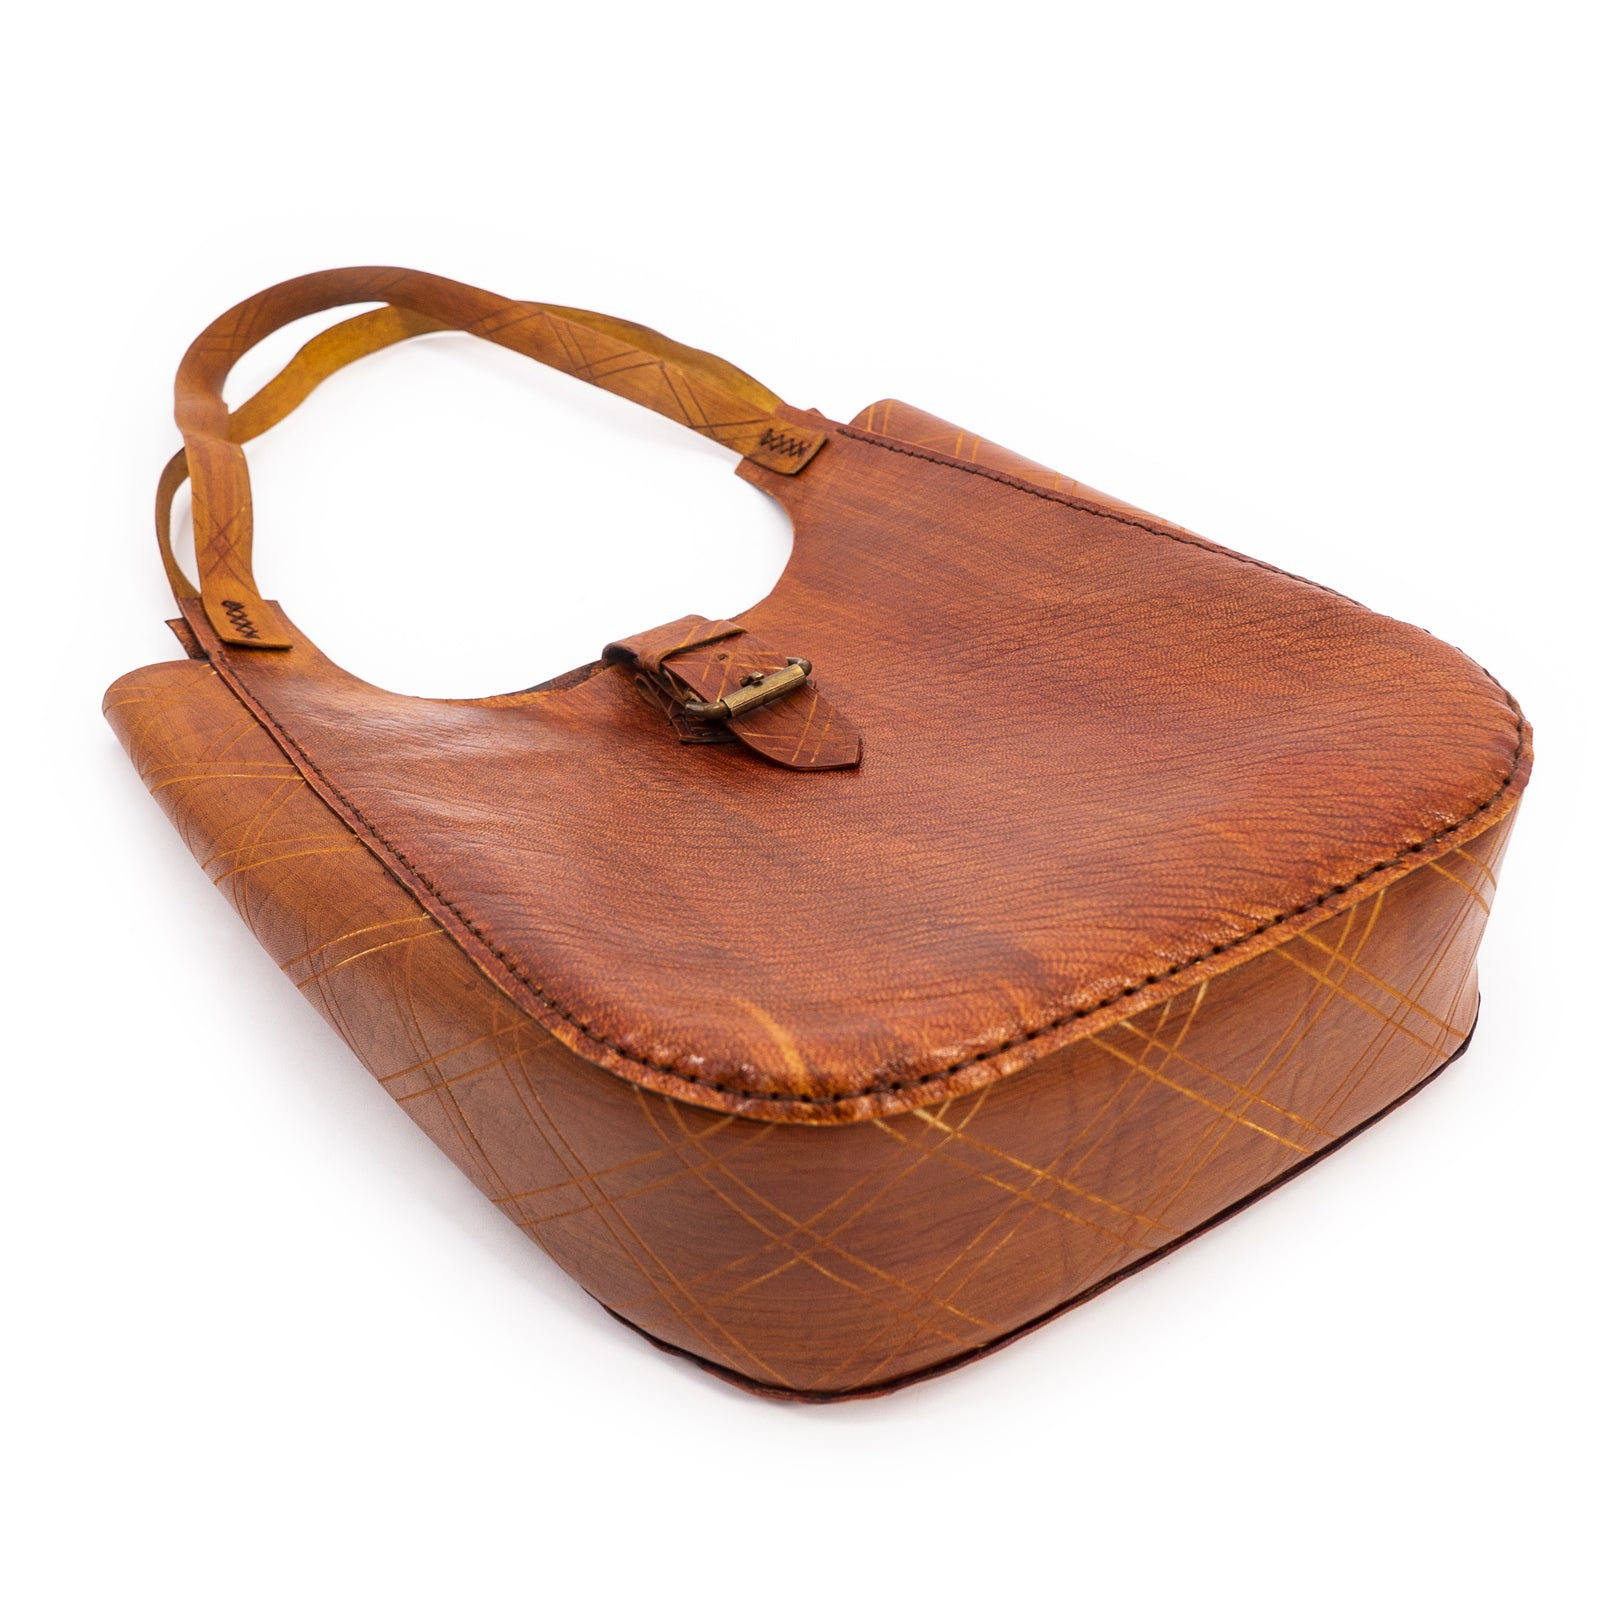 Derifix Infante Women's Handmade Leather Bag